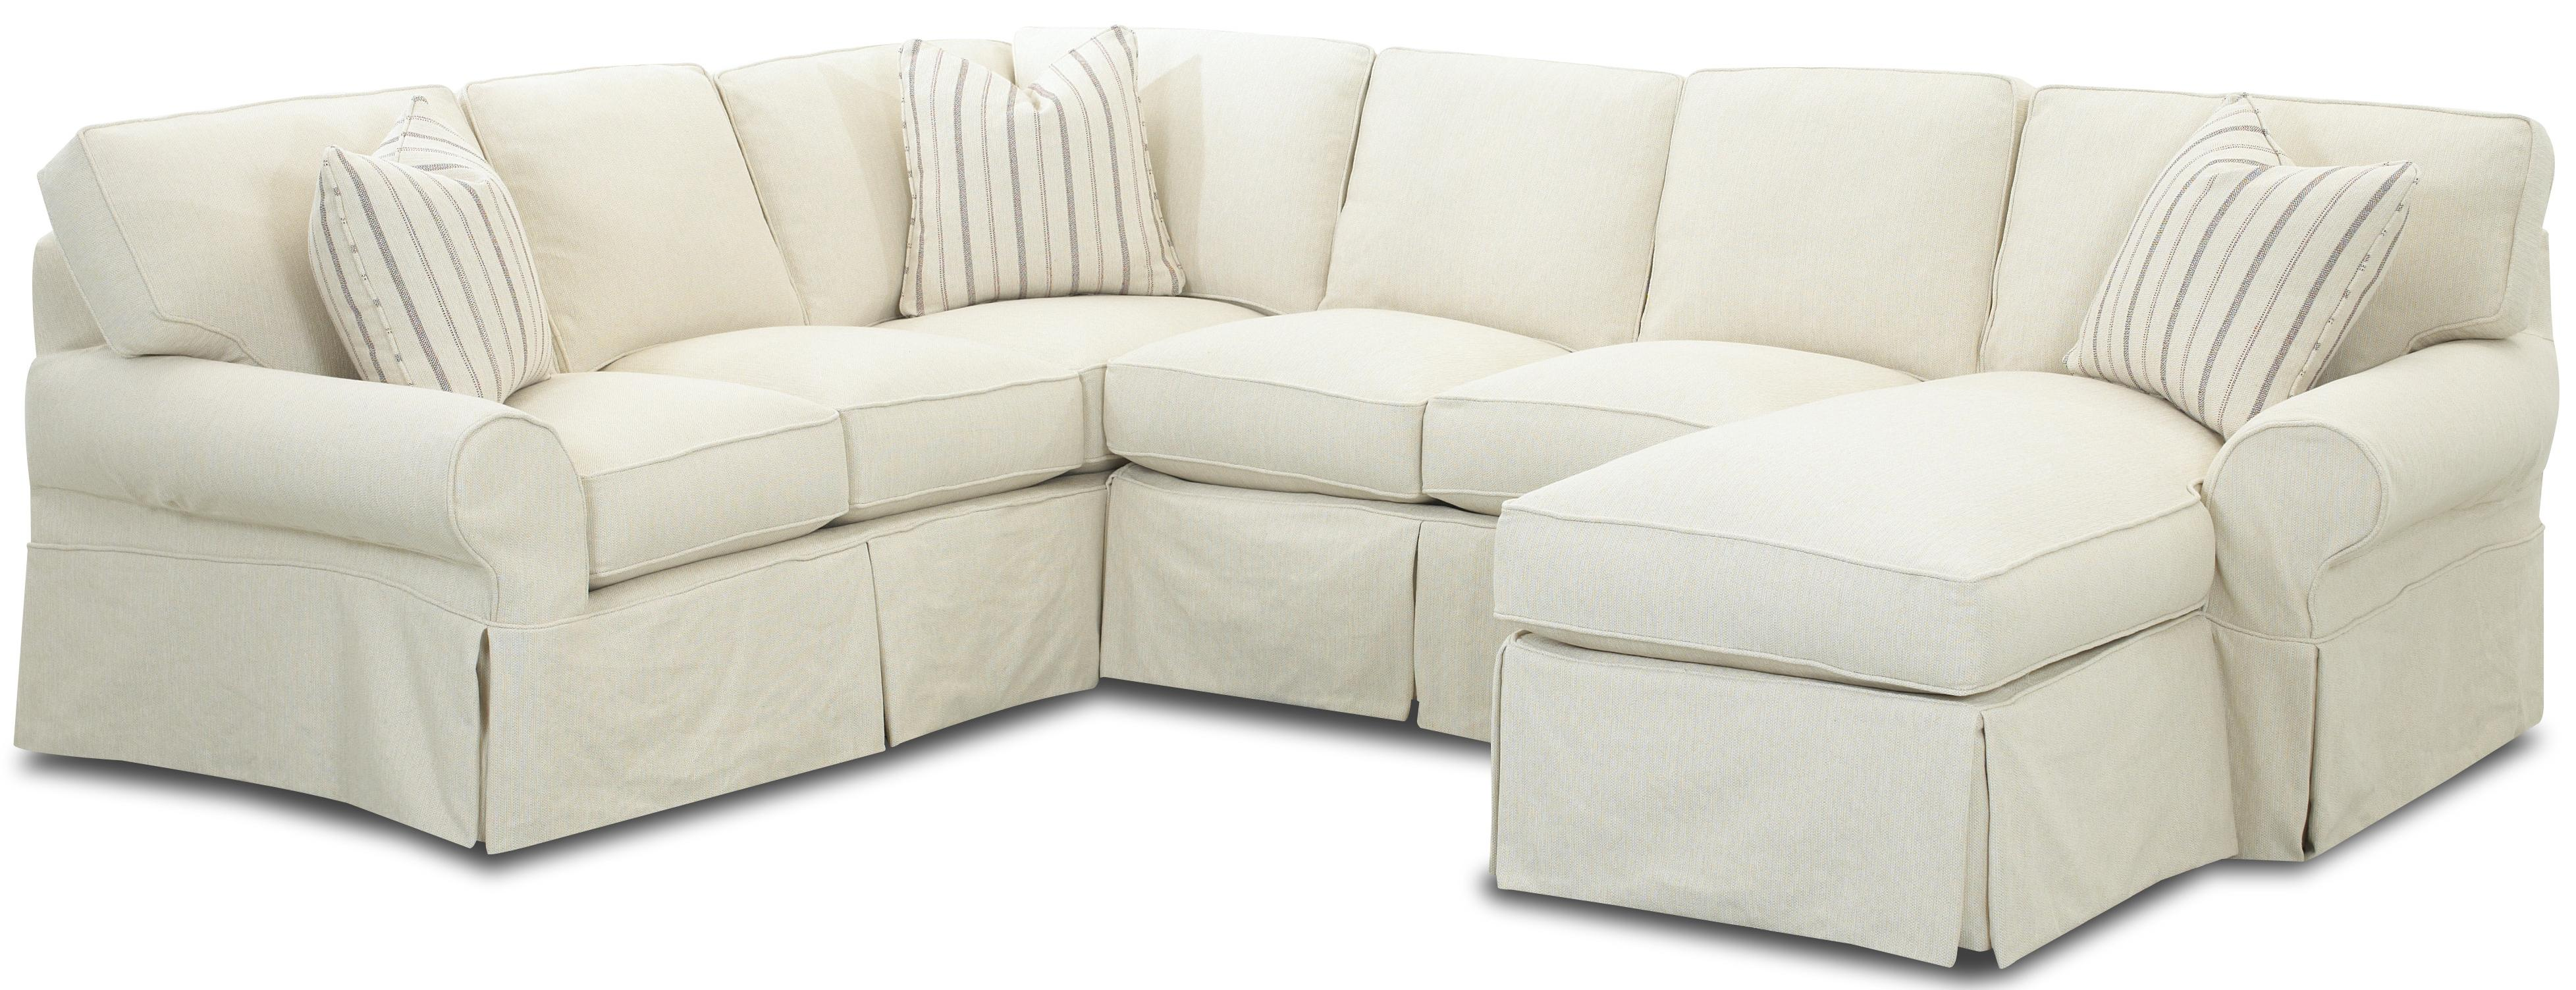 left chaise sofa sectional slipcover grey and white sets with